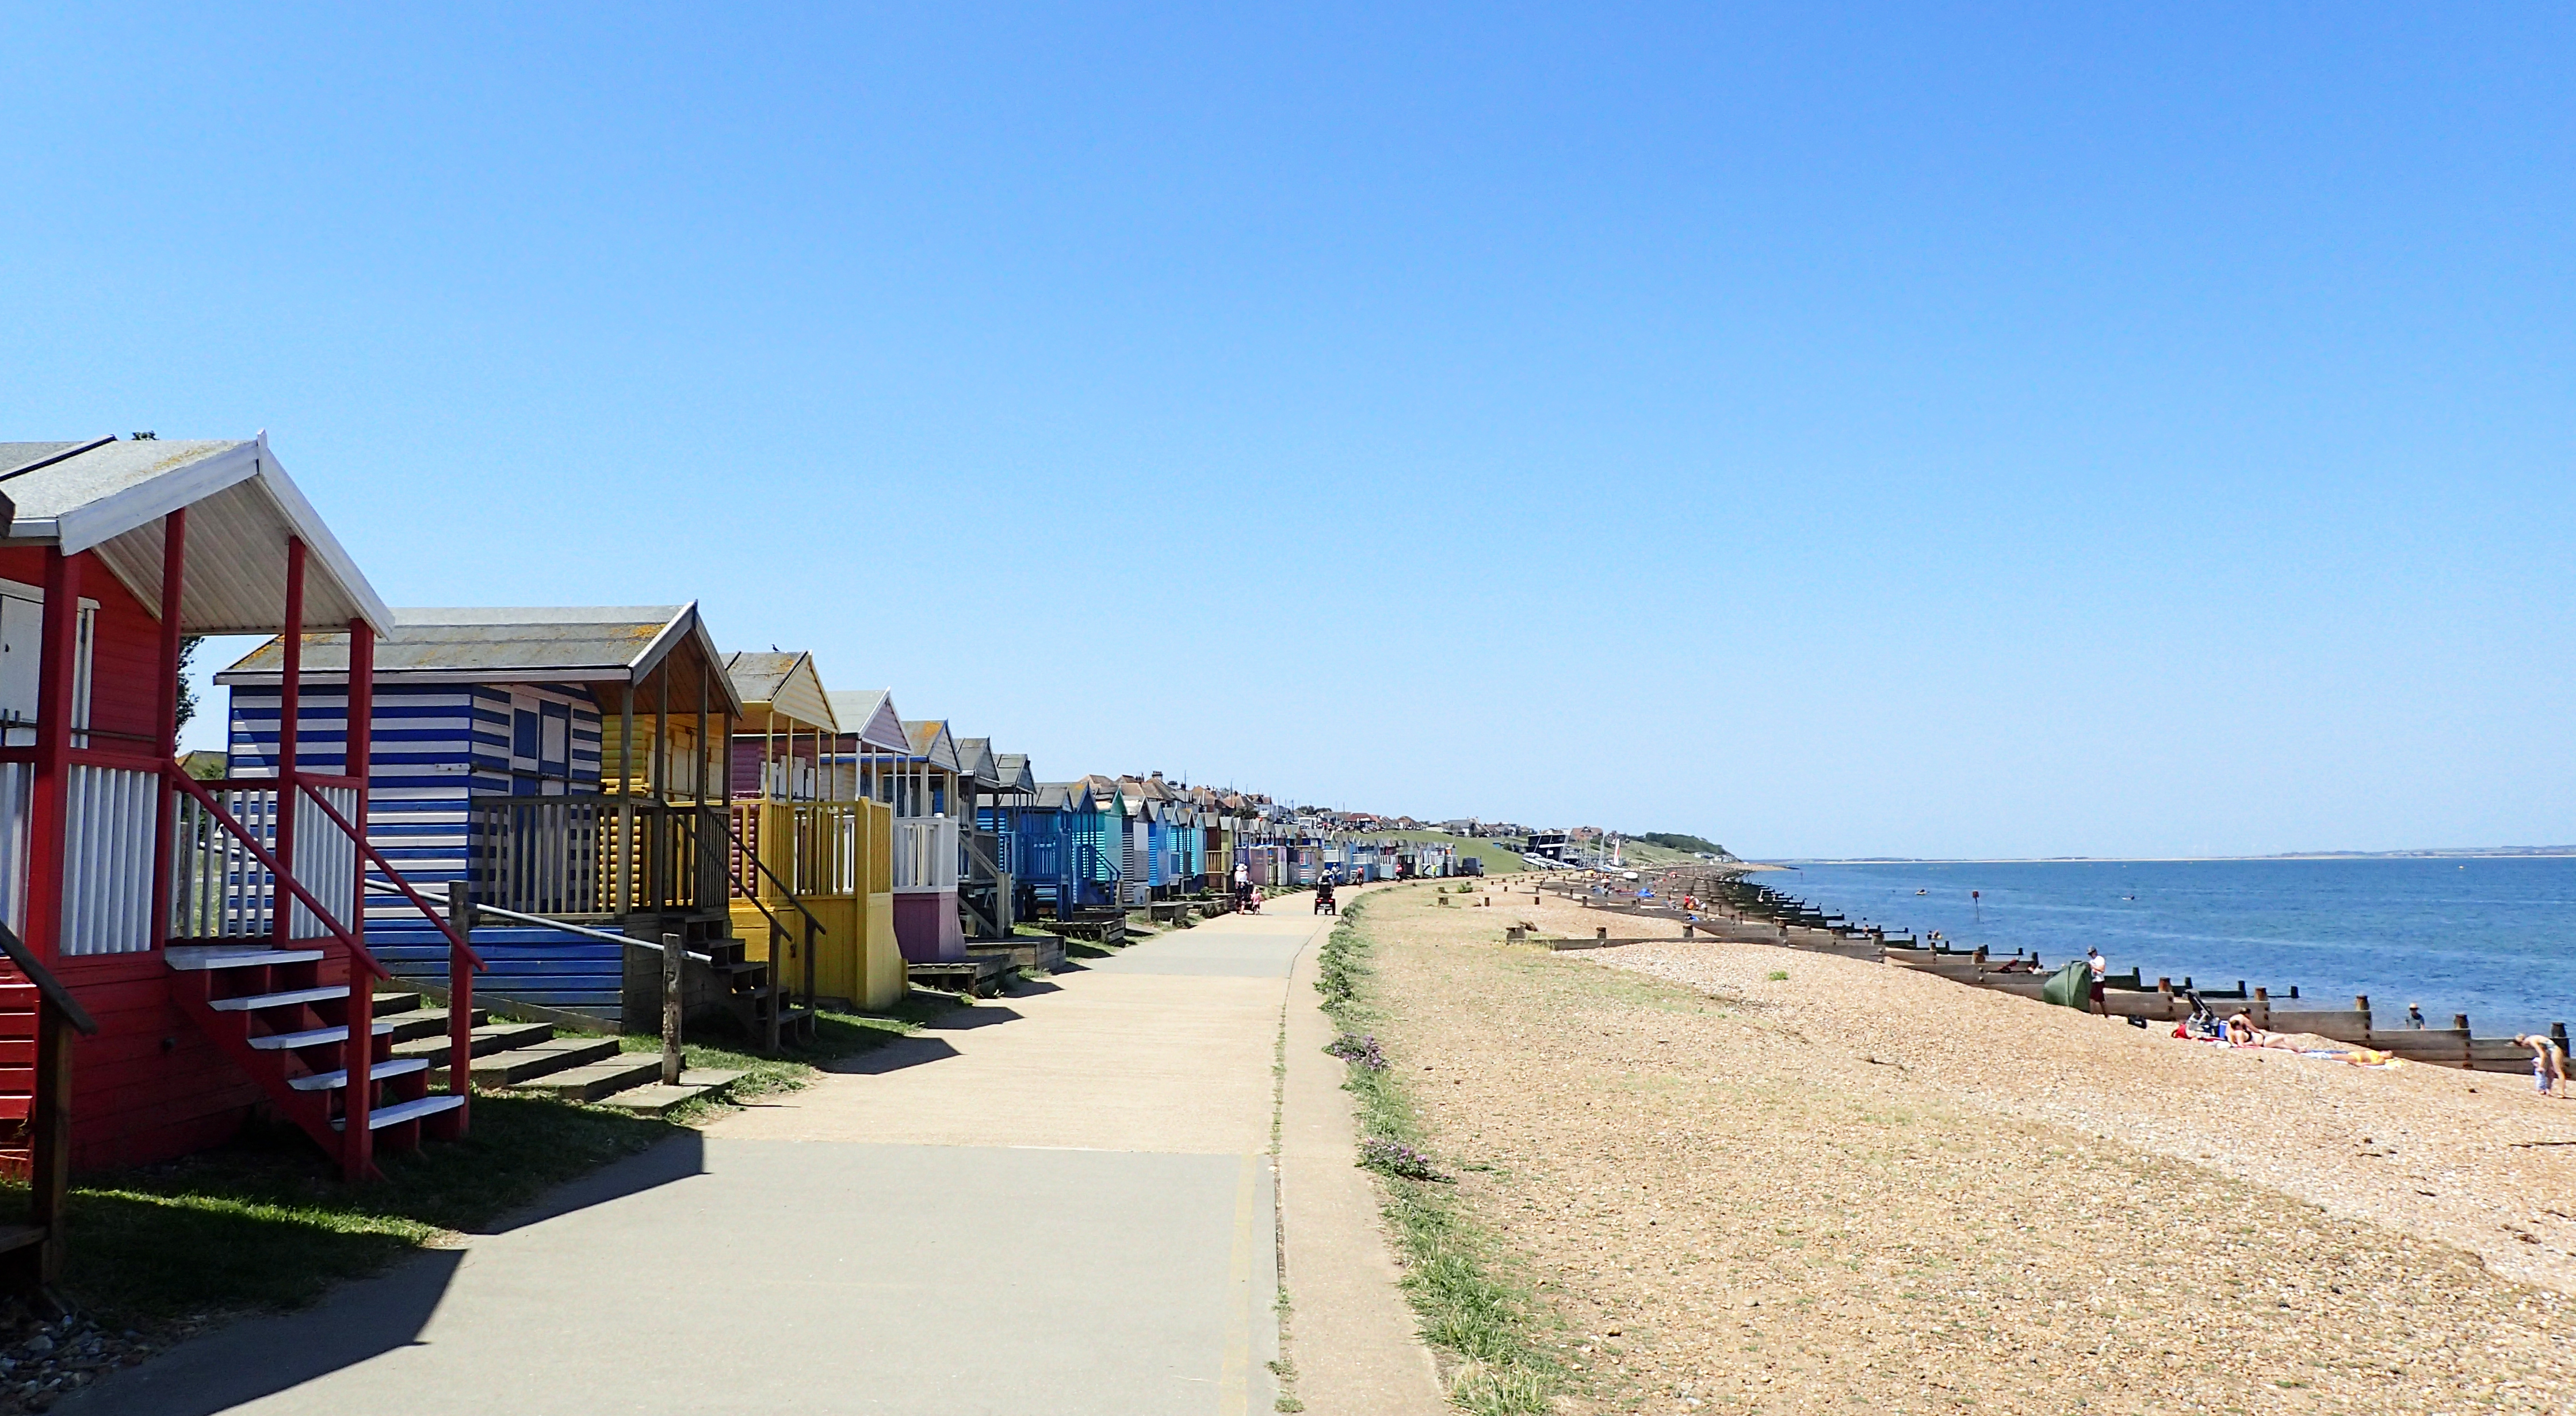 Approaching Herne Bay the Saxon Shore Way begins to pass brightly painted beach huts, now selling for tens of thousands of pounds each